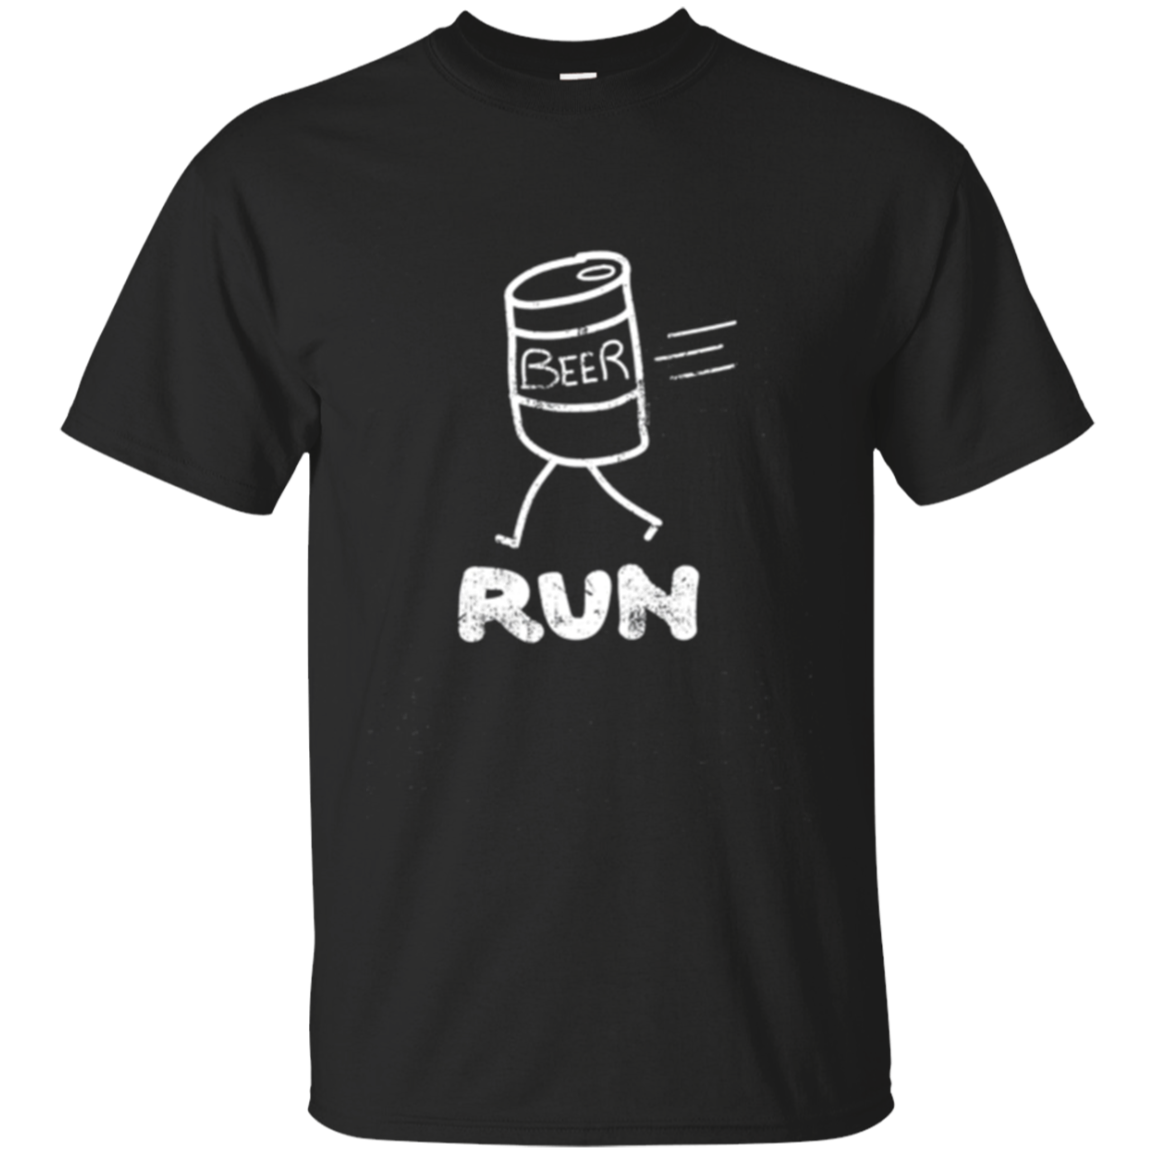 Beer Run - Adult Drinking T-Shirt